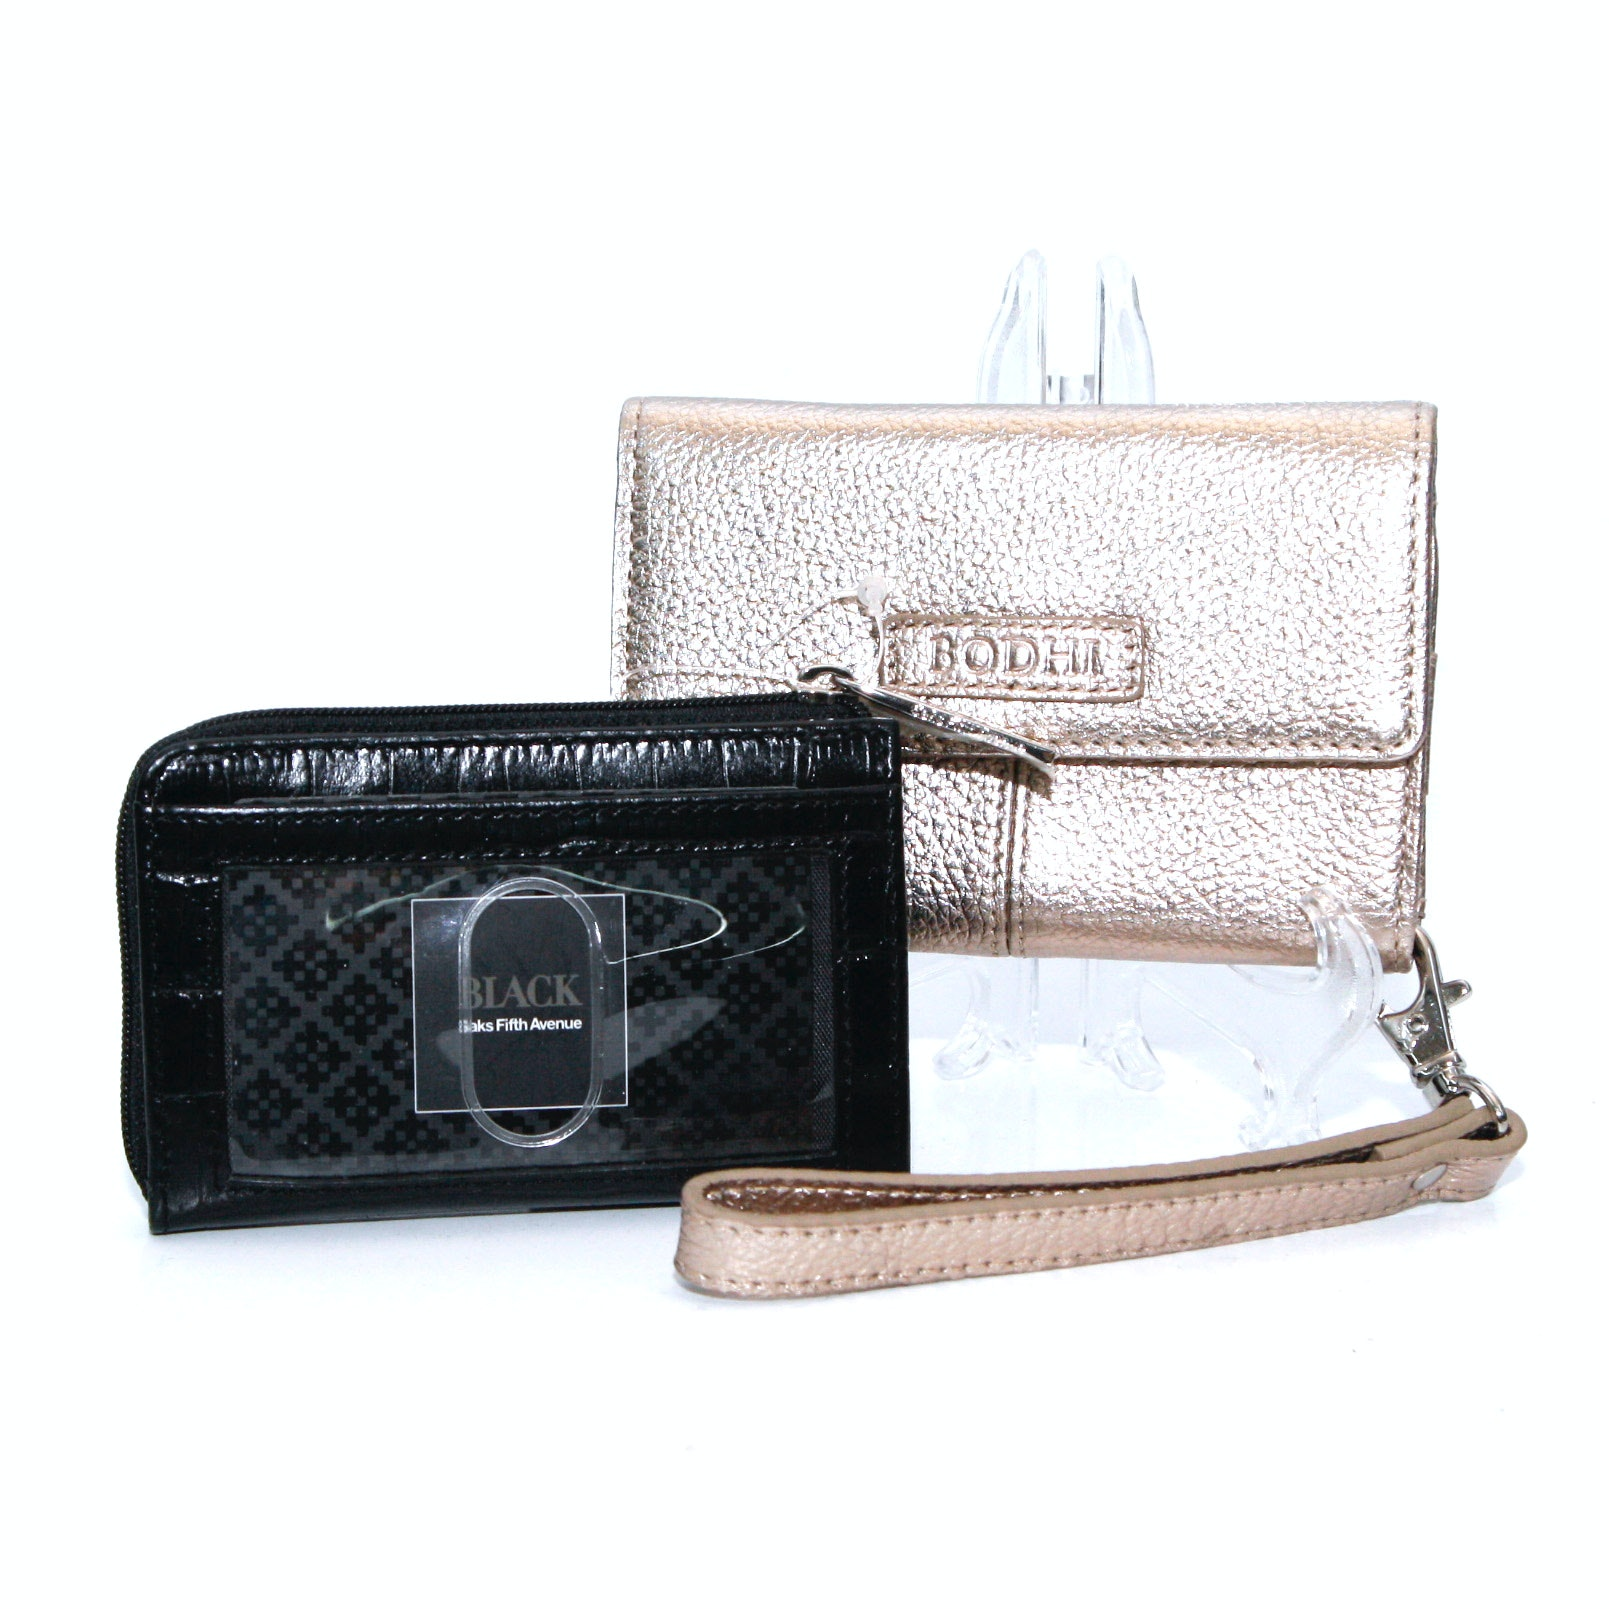 Saks Fifth Avenue and Bodhi Leather Coin Purses